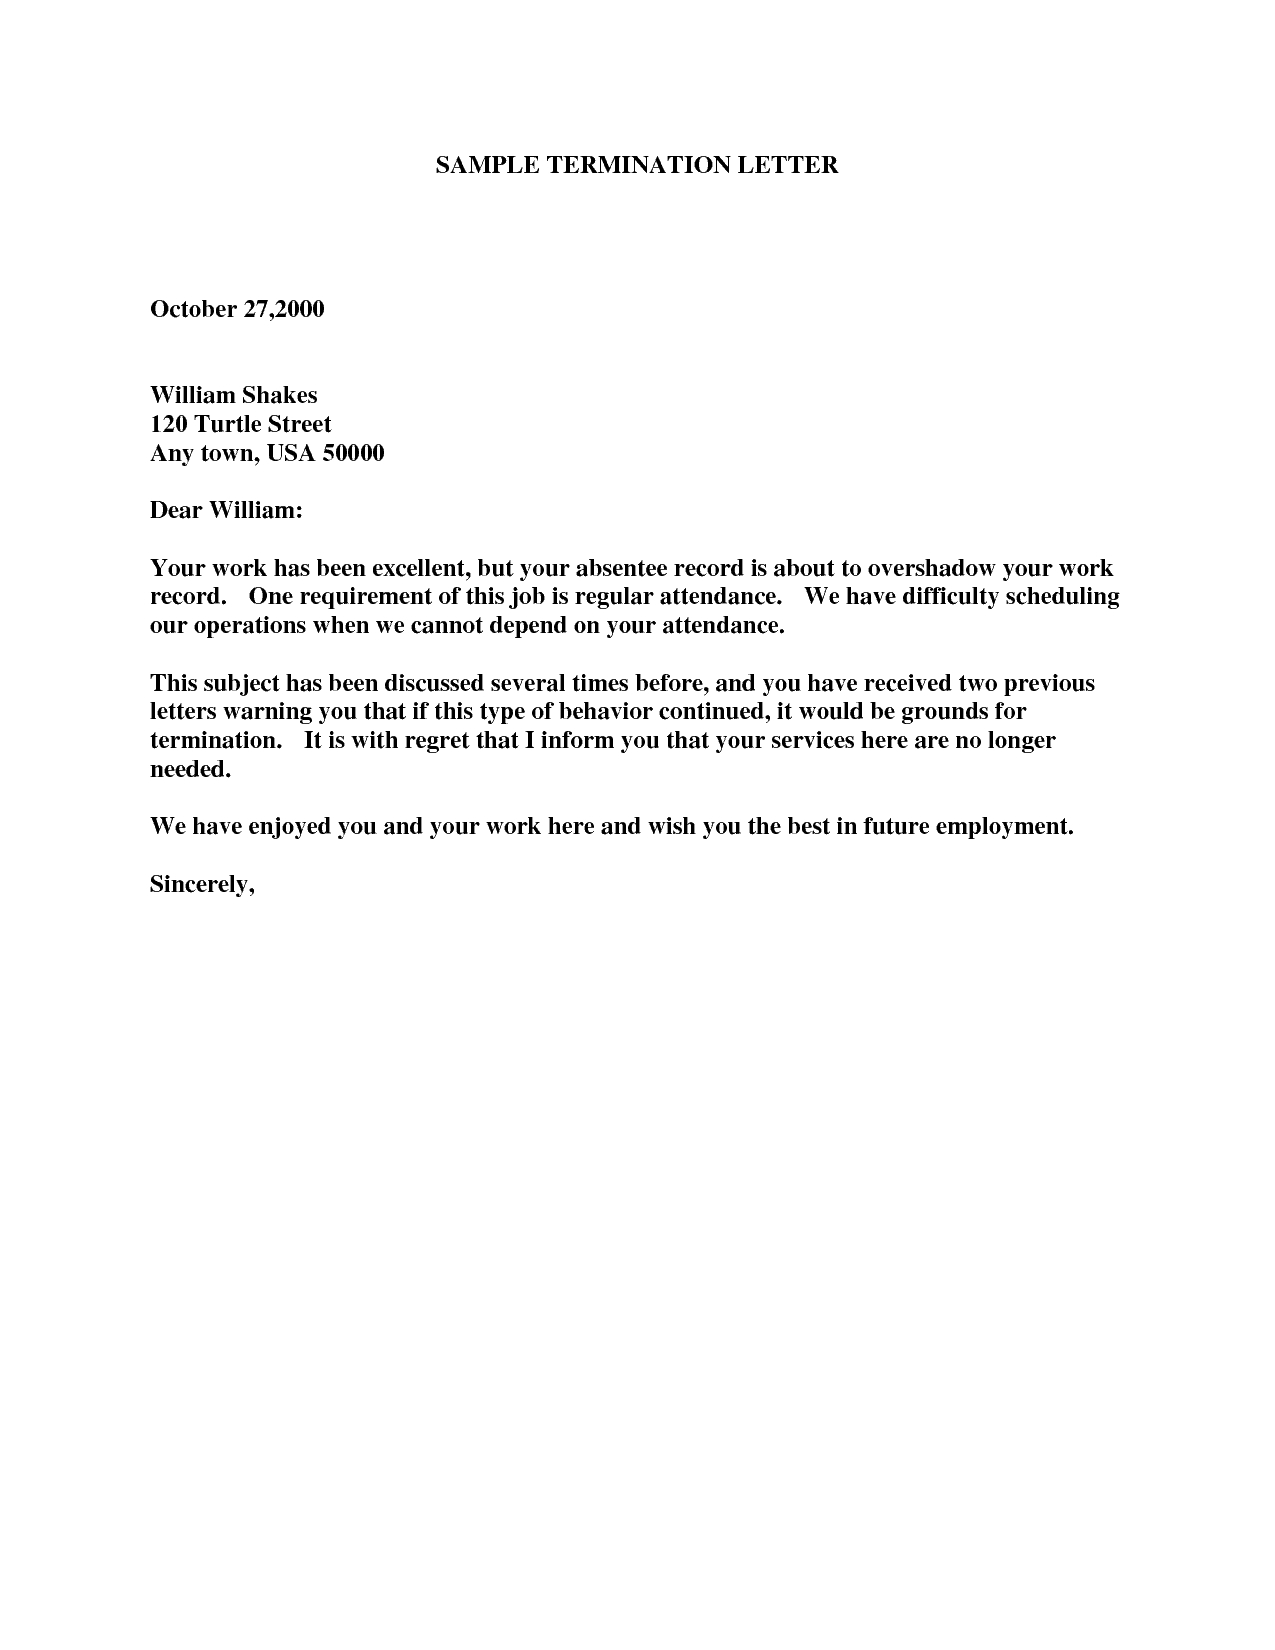 Example Of Termination Letter To Employee.19 Termination Letter Samples Writing Letters Formats